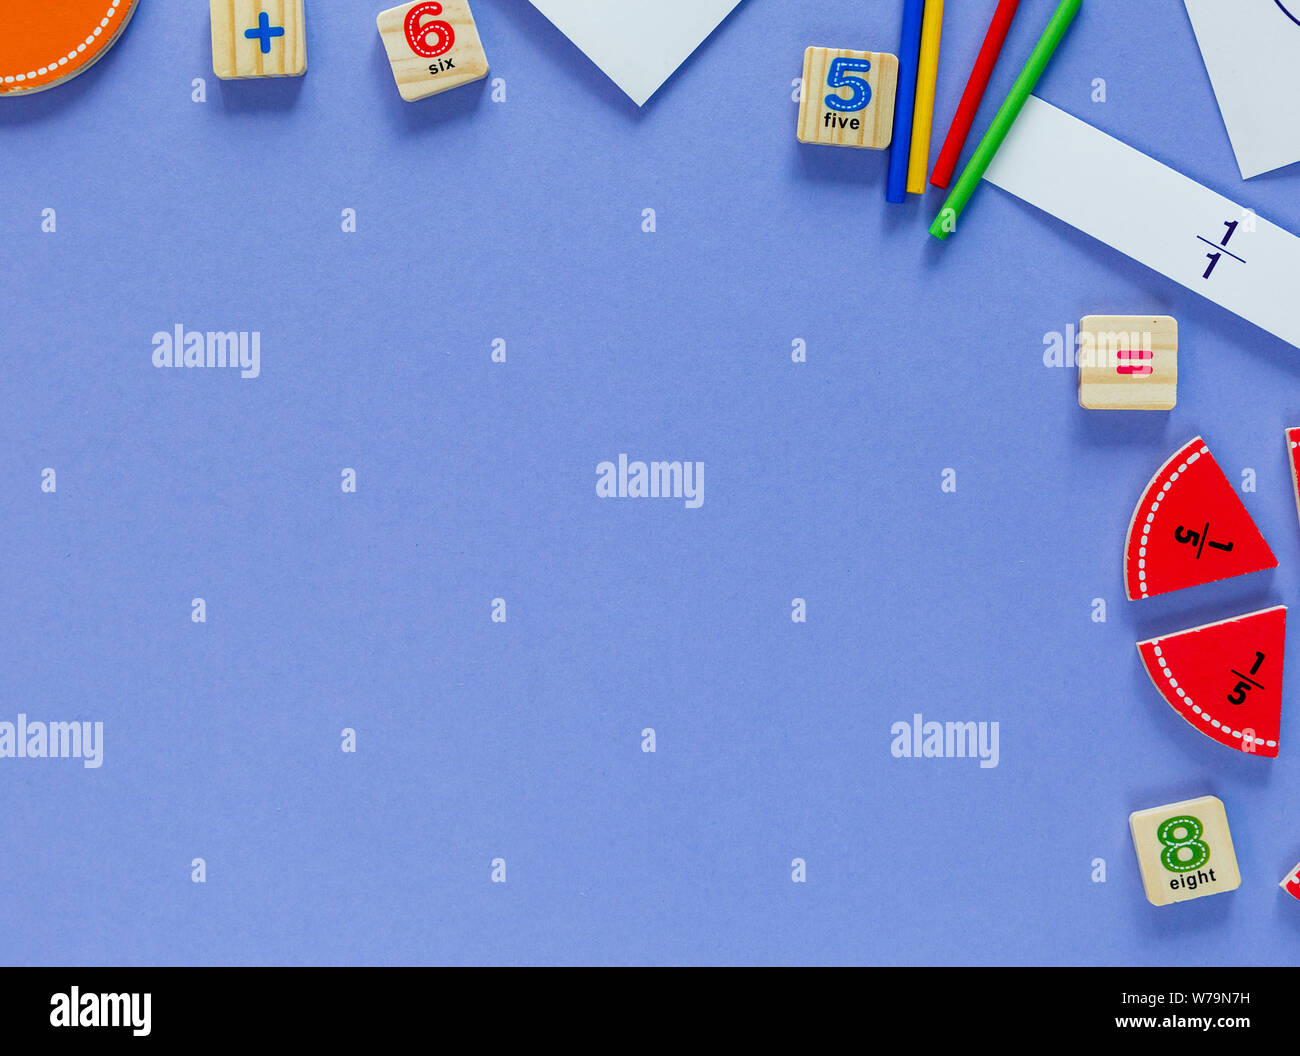 solorful math fractions on violet background interesting math for kids education back to school concept geometry and mathematics materials stock photo alamy https www alamy com olorful math fractions on violet background interesting math for kids education back to school concept geometry and mathematics materials image262672357 html